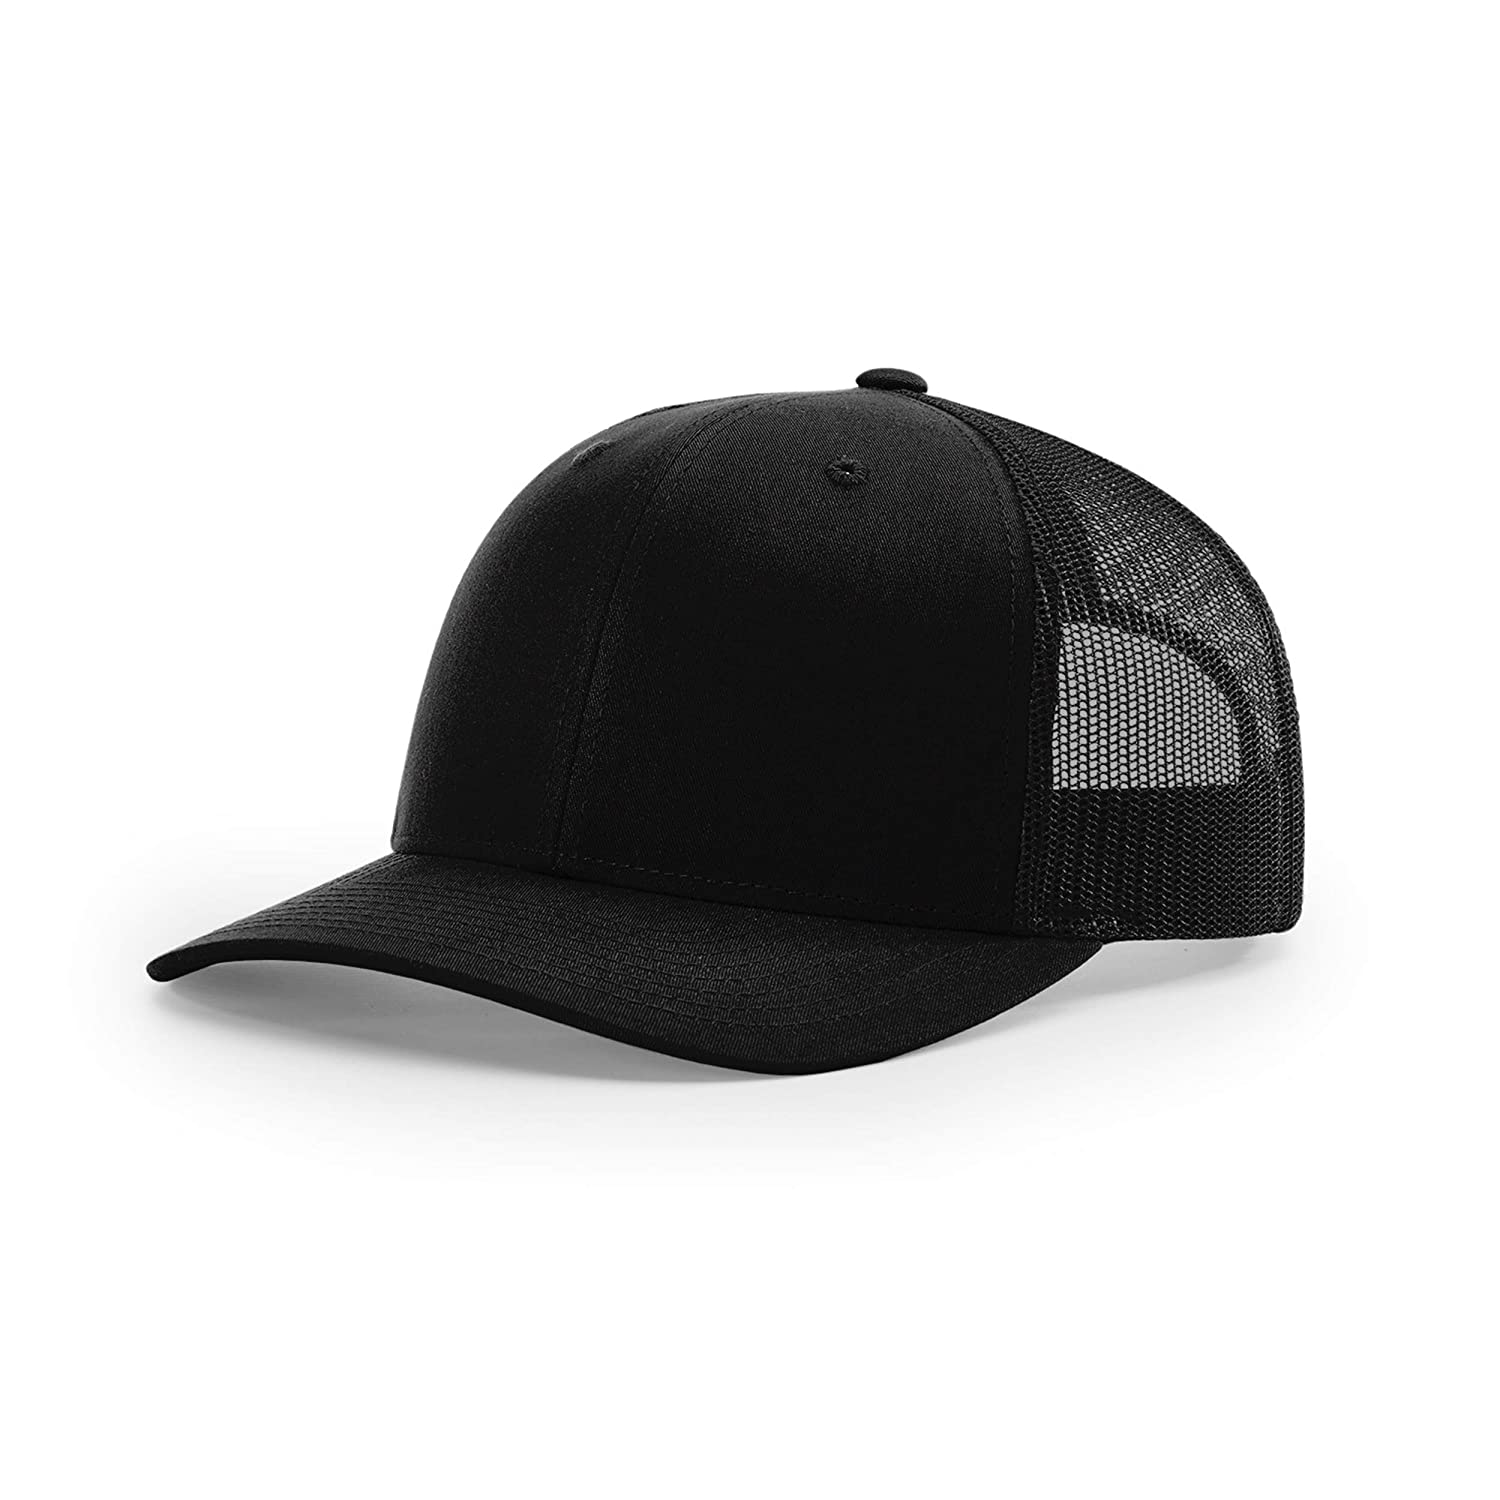 Richardson Unisex 112 Trucker Adjustable Snapback Baseball Cap, Solid Black, One Size Fits Most: Beauty